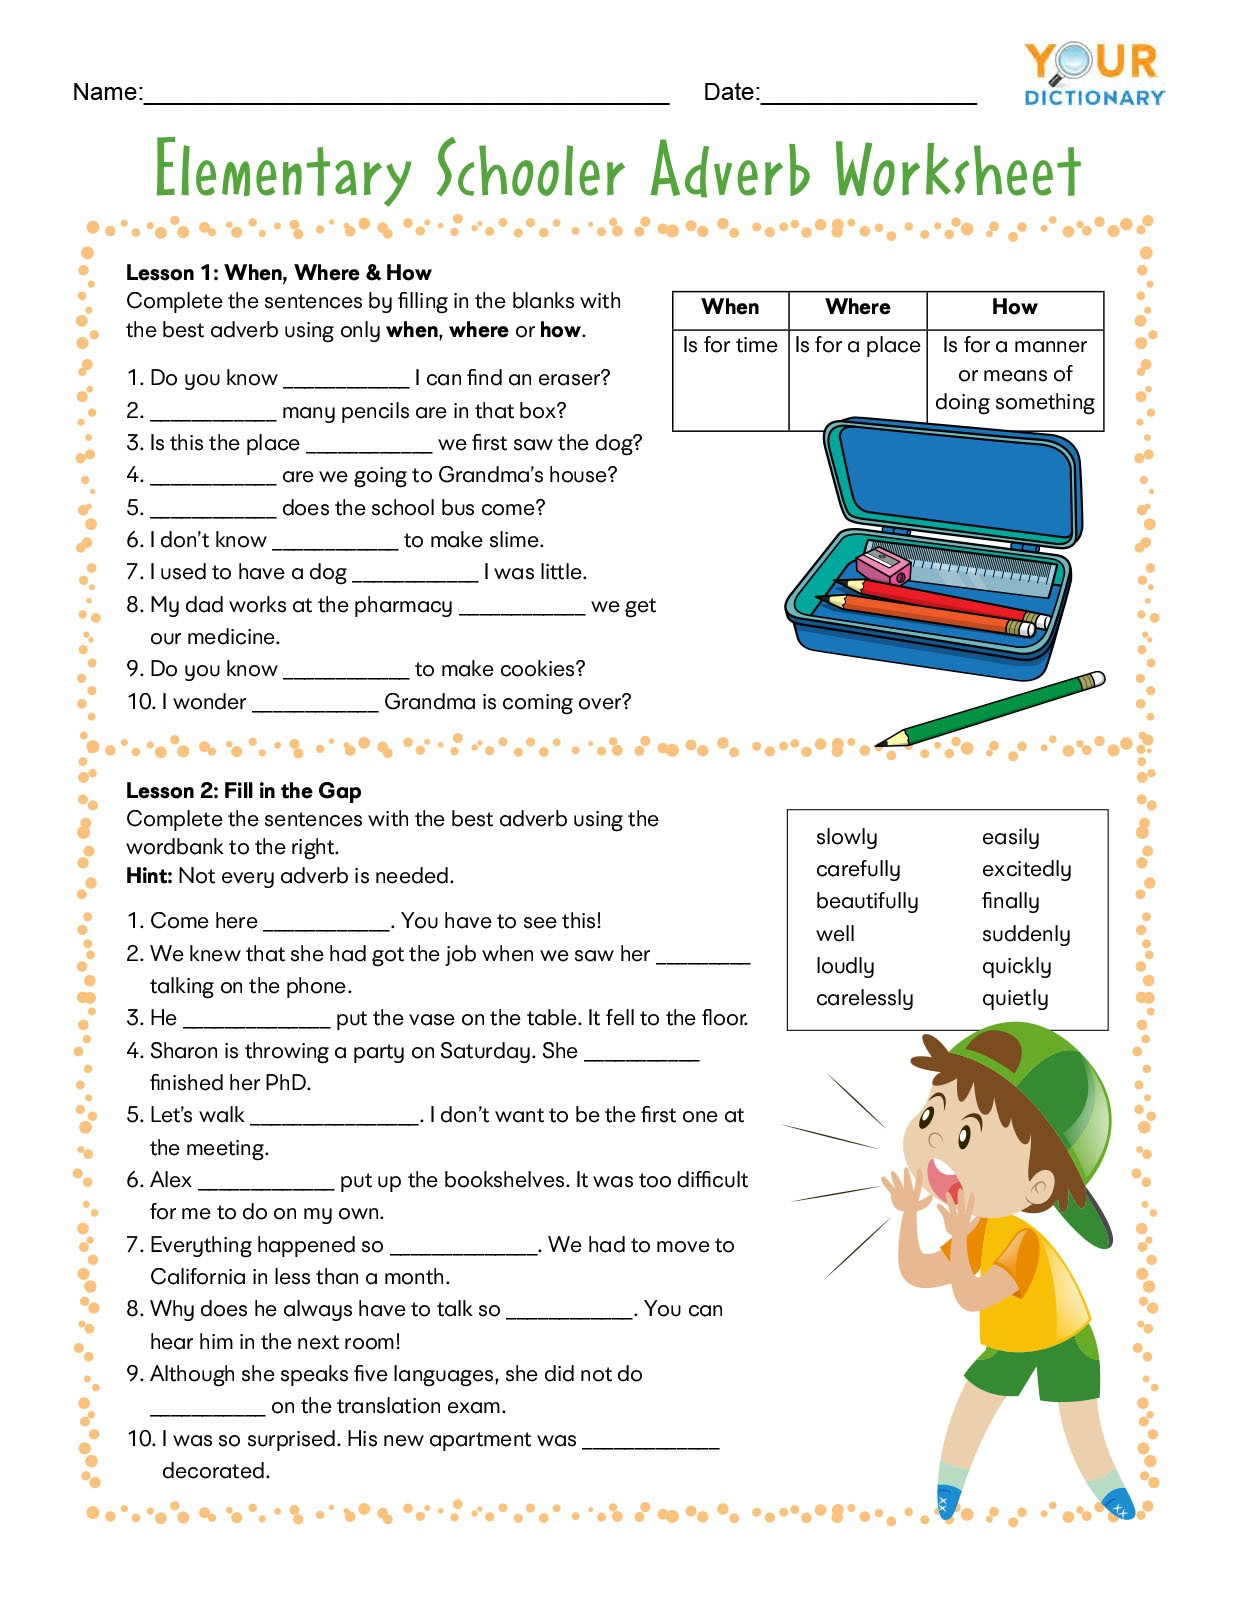 4th Grade Adverb Worksheets Adverb Worksheets for Elementary and Middle School